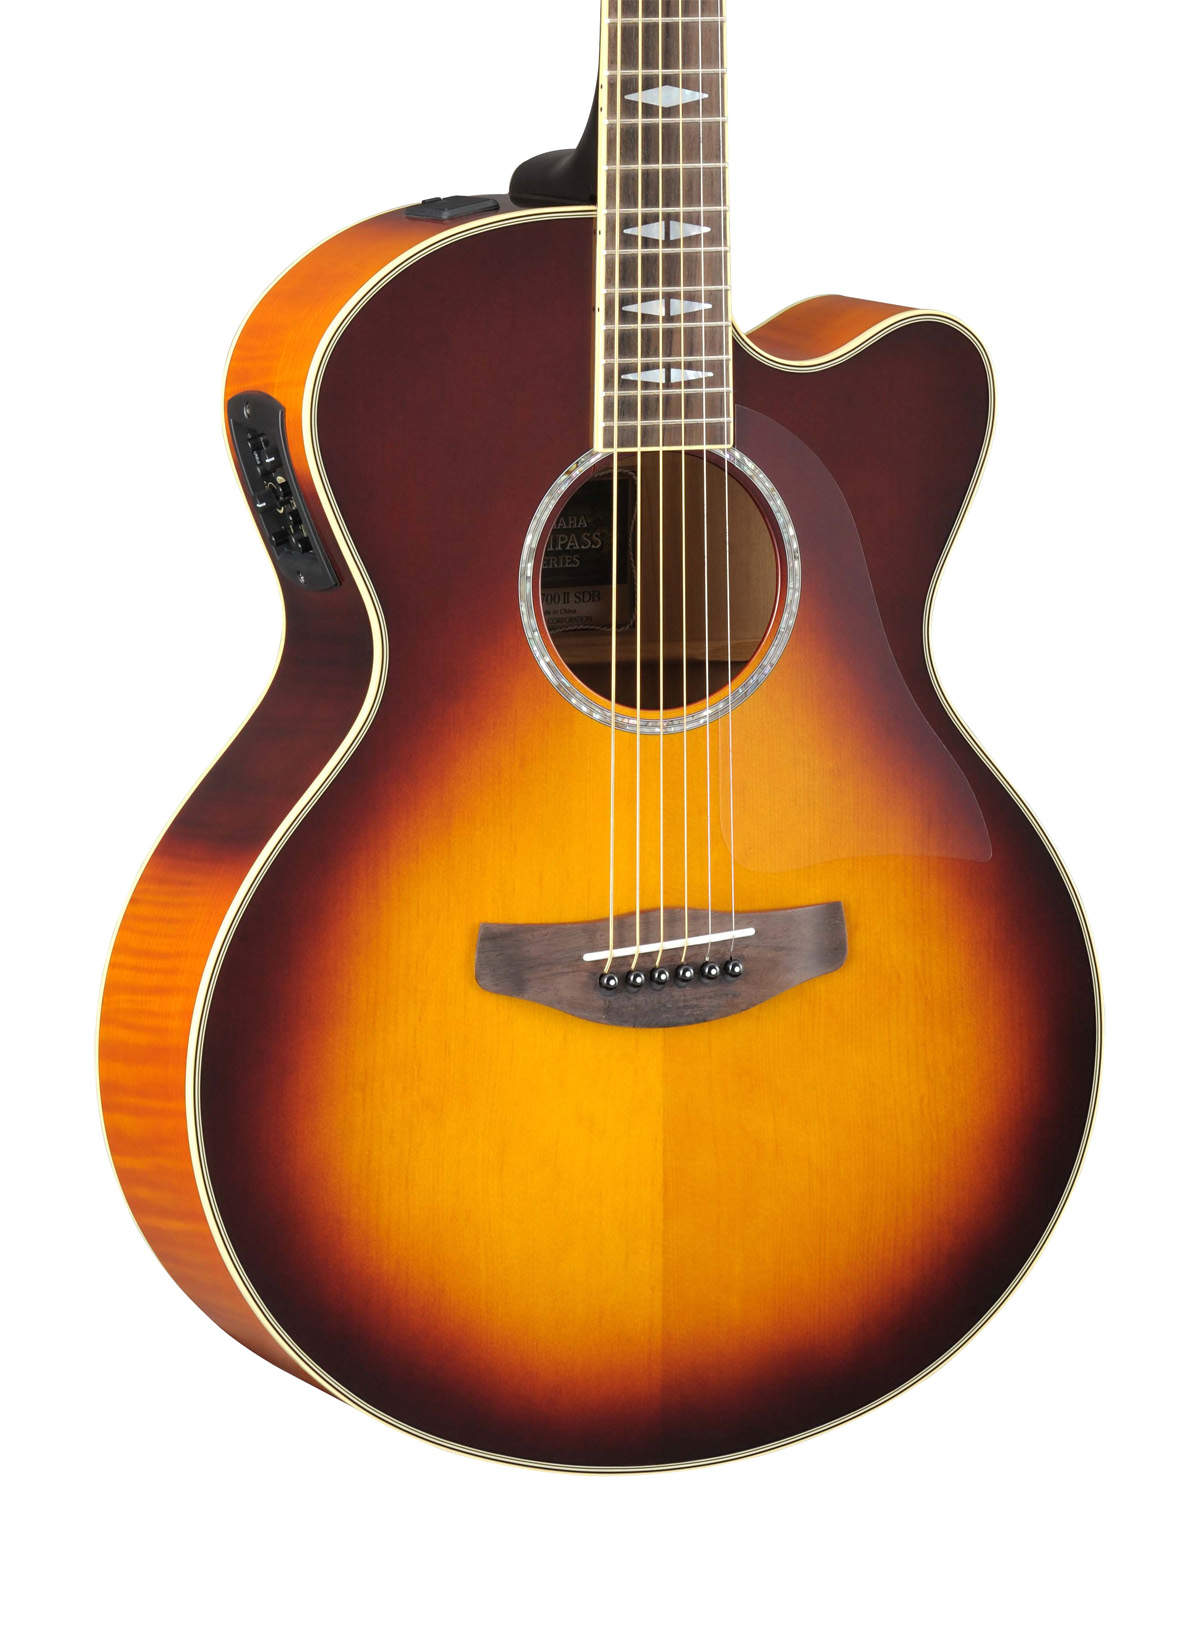 yamaha cpx1000 electro acoustic guitar in brown sunburst finish yamaha music london. Black Bedroom Furniture Sets. Home Design Ideas